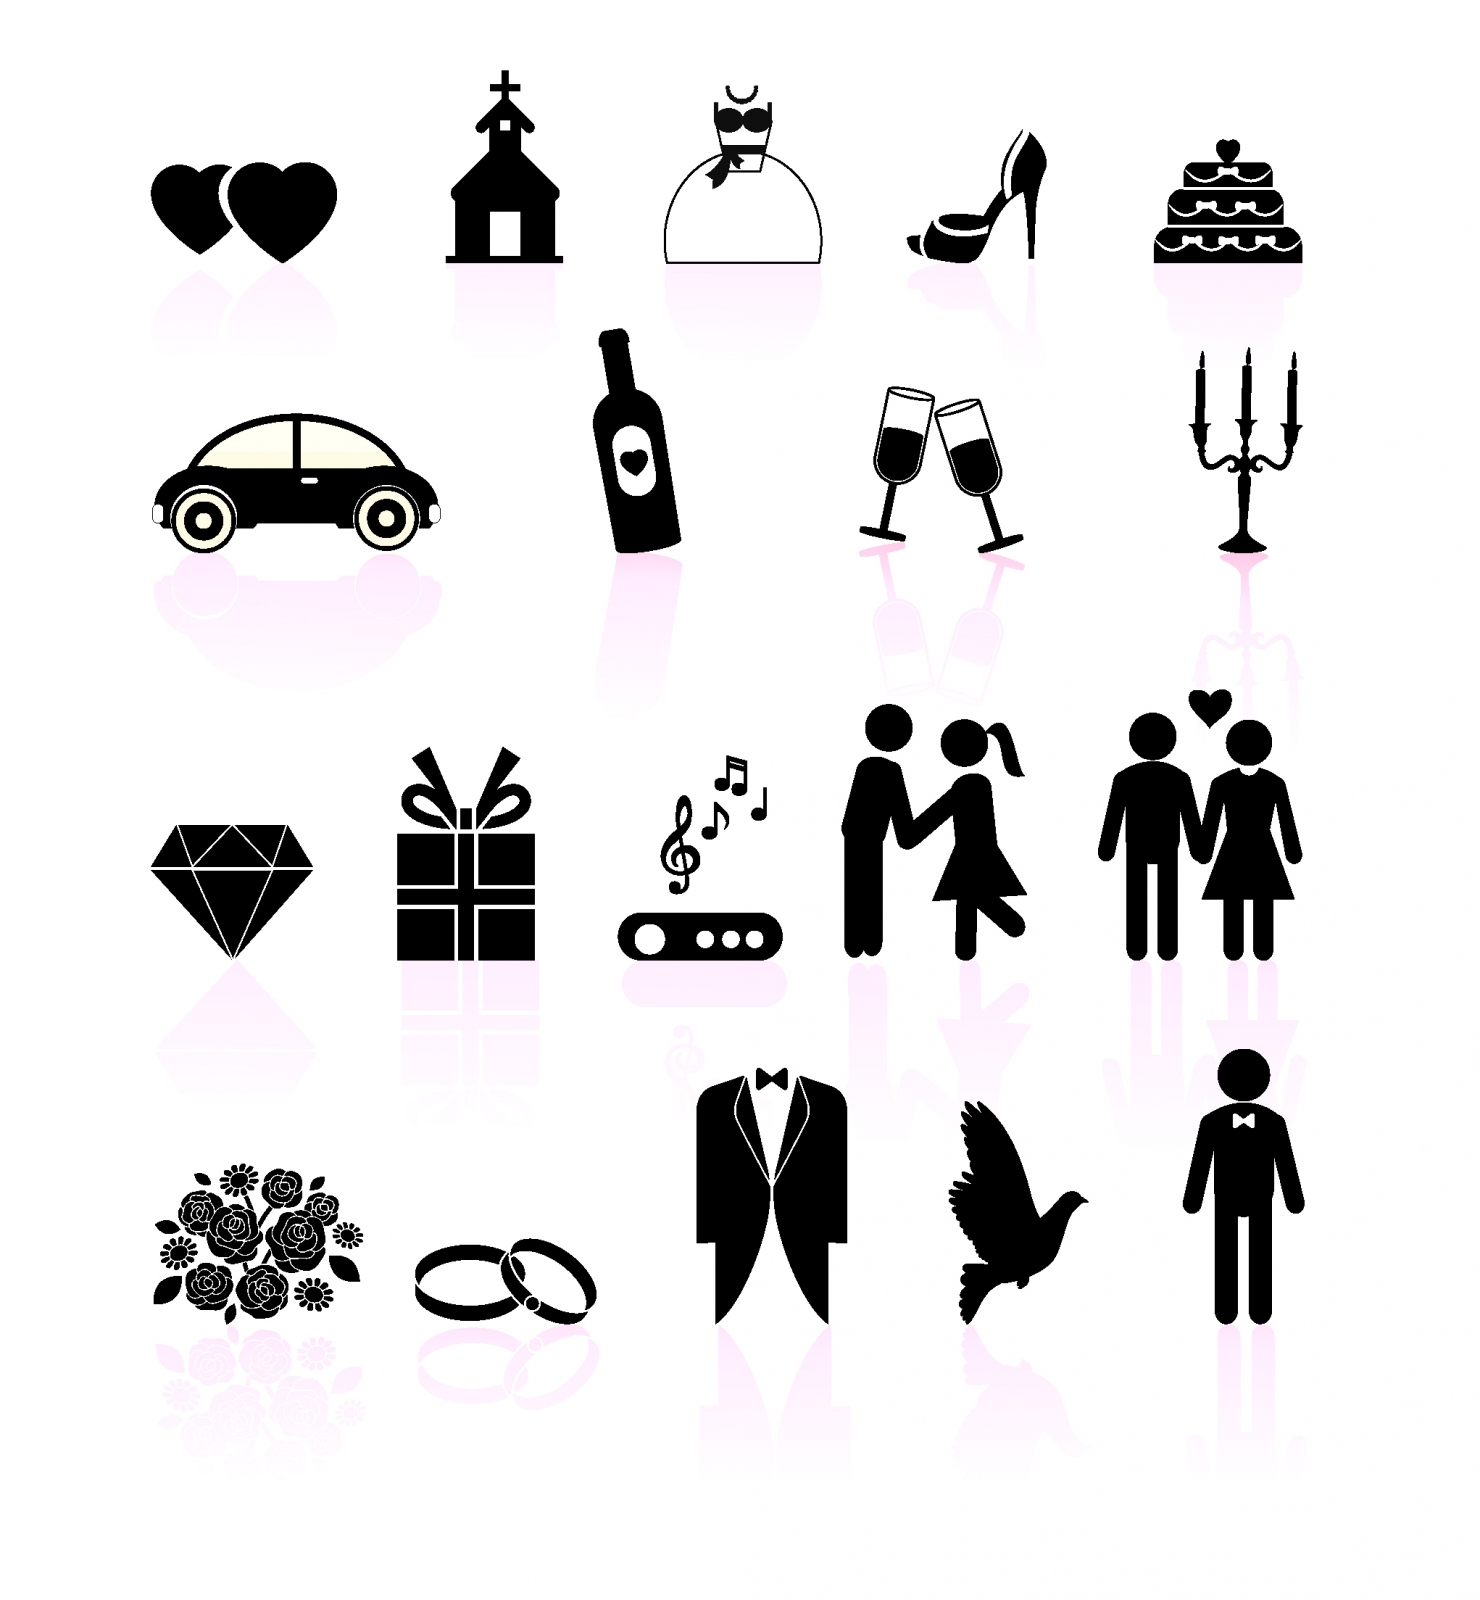 14 Black And White Icons Pay Day Images